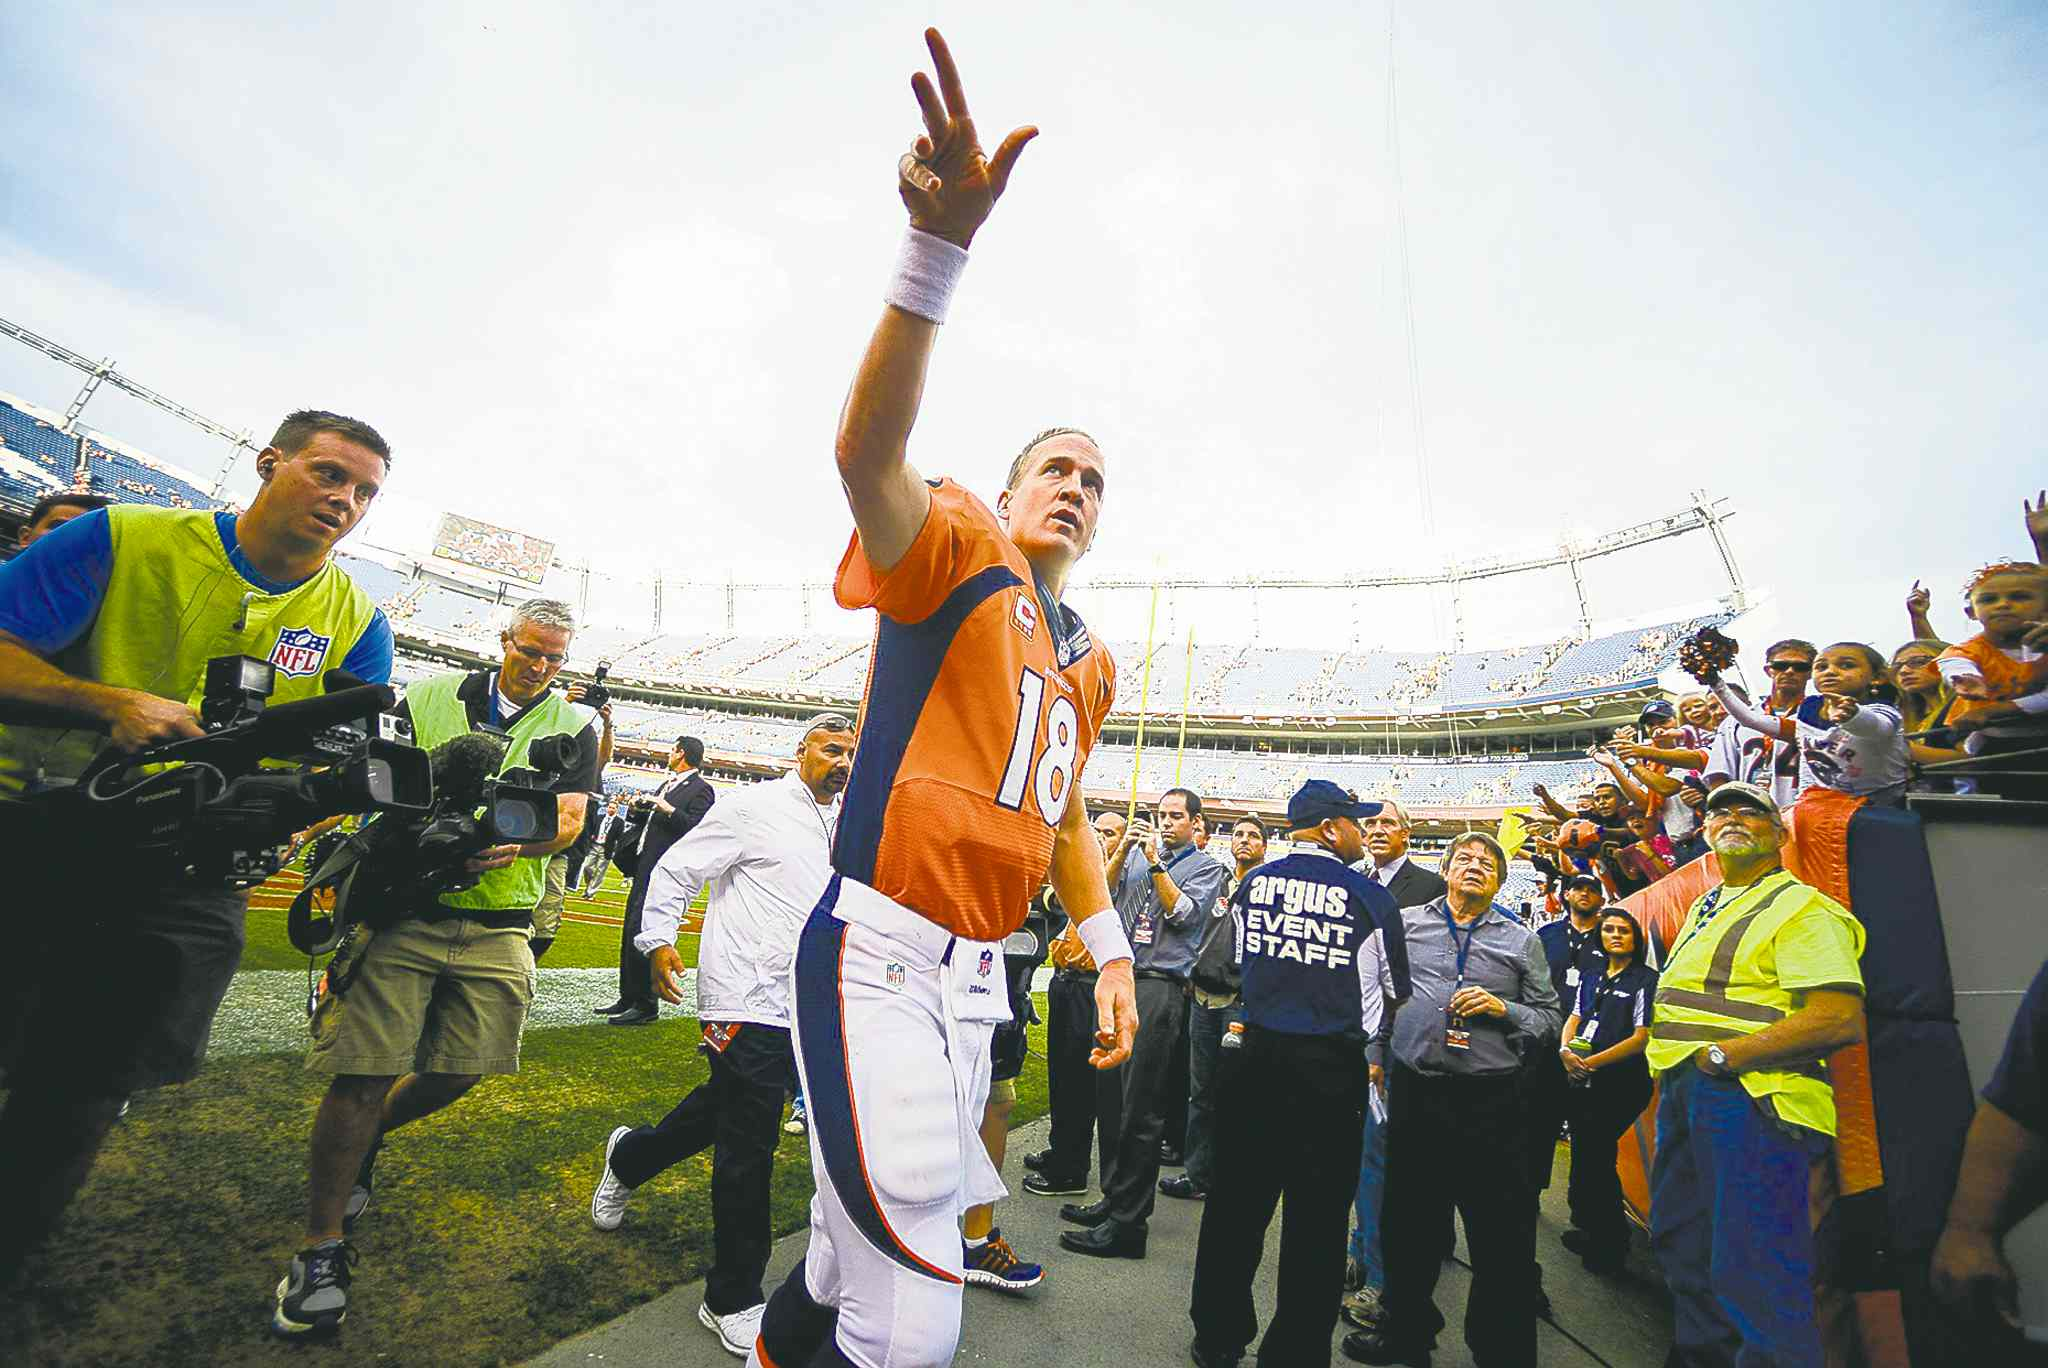 Denver Broncos quarterback Peyton Manning celebrates with fans after the Broncos crushed the Philadelphia Eagles 52-20 on Sunday.